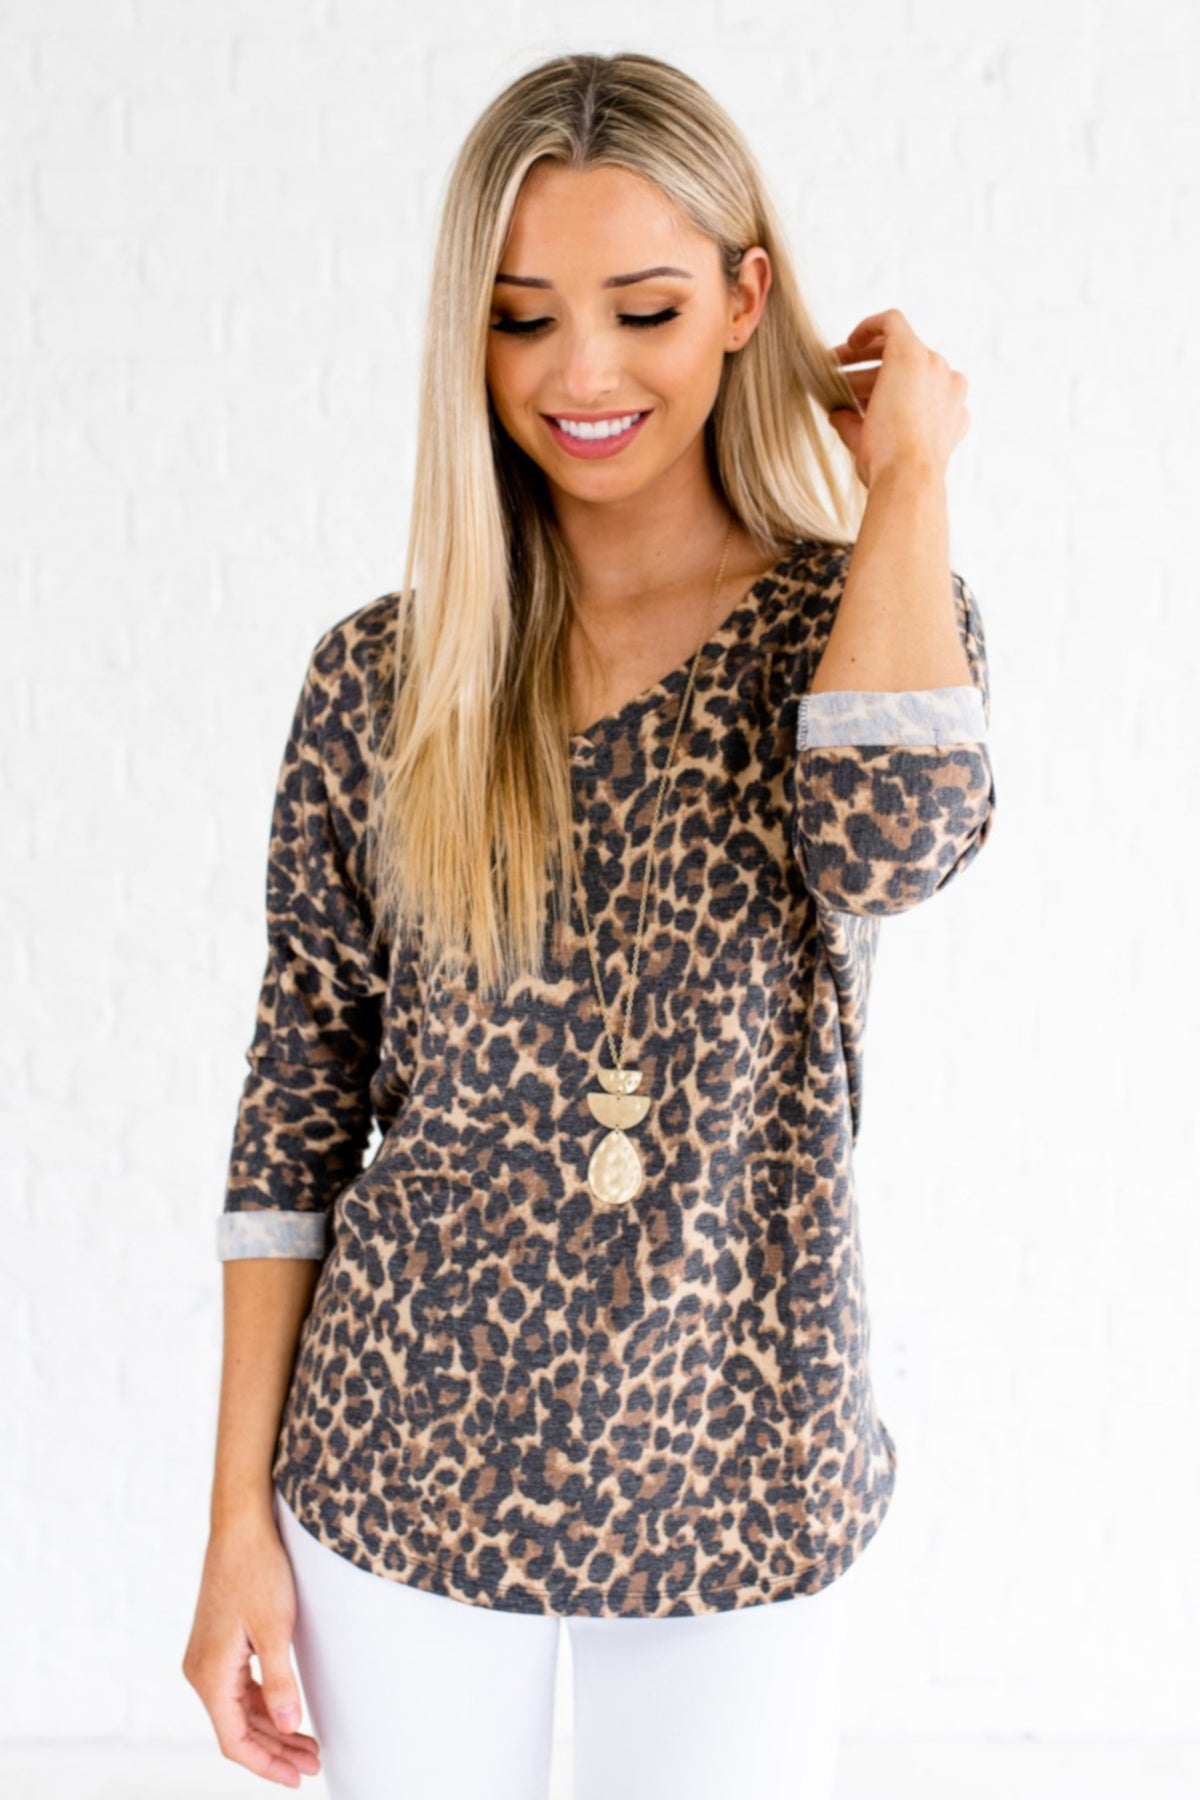 fb4a5d4613f70 Faded Leopard Print Cute Boutique Tops Faux Cuffed Sleeves. Beige Brown ...